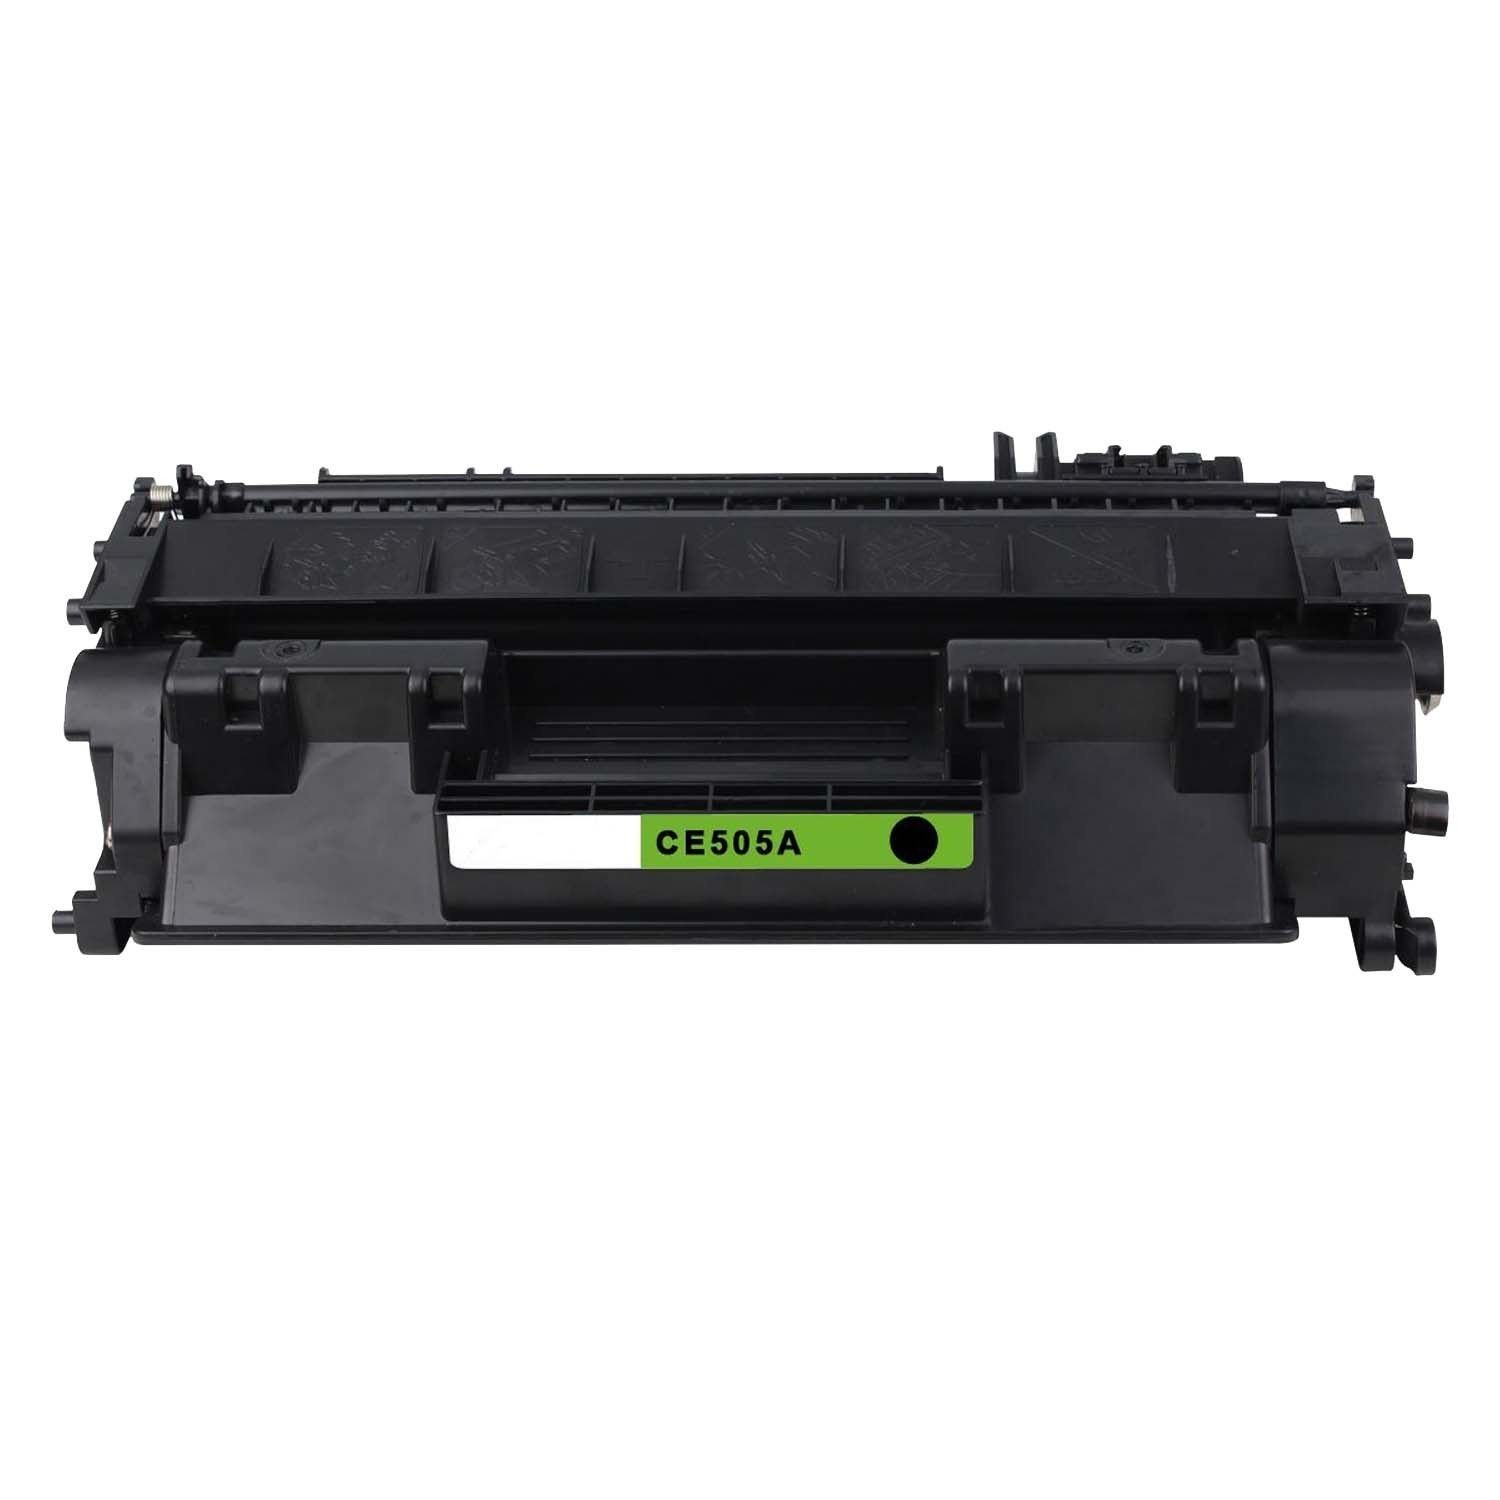 N 1PK Compatible CE505A Toner Cartridge For HP LaserJet P2035 P2035n P2055 P2055d P2055dn P2055x